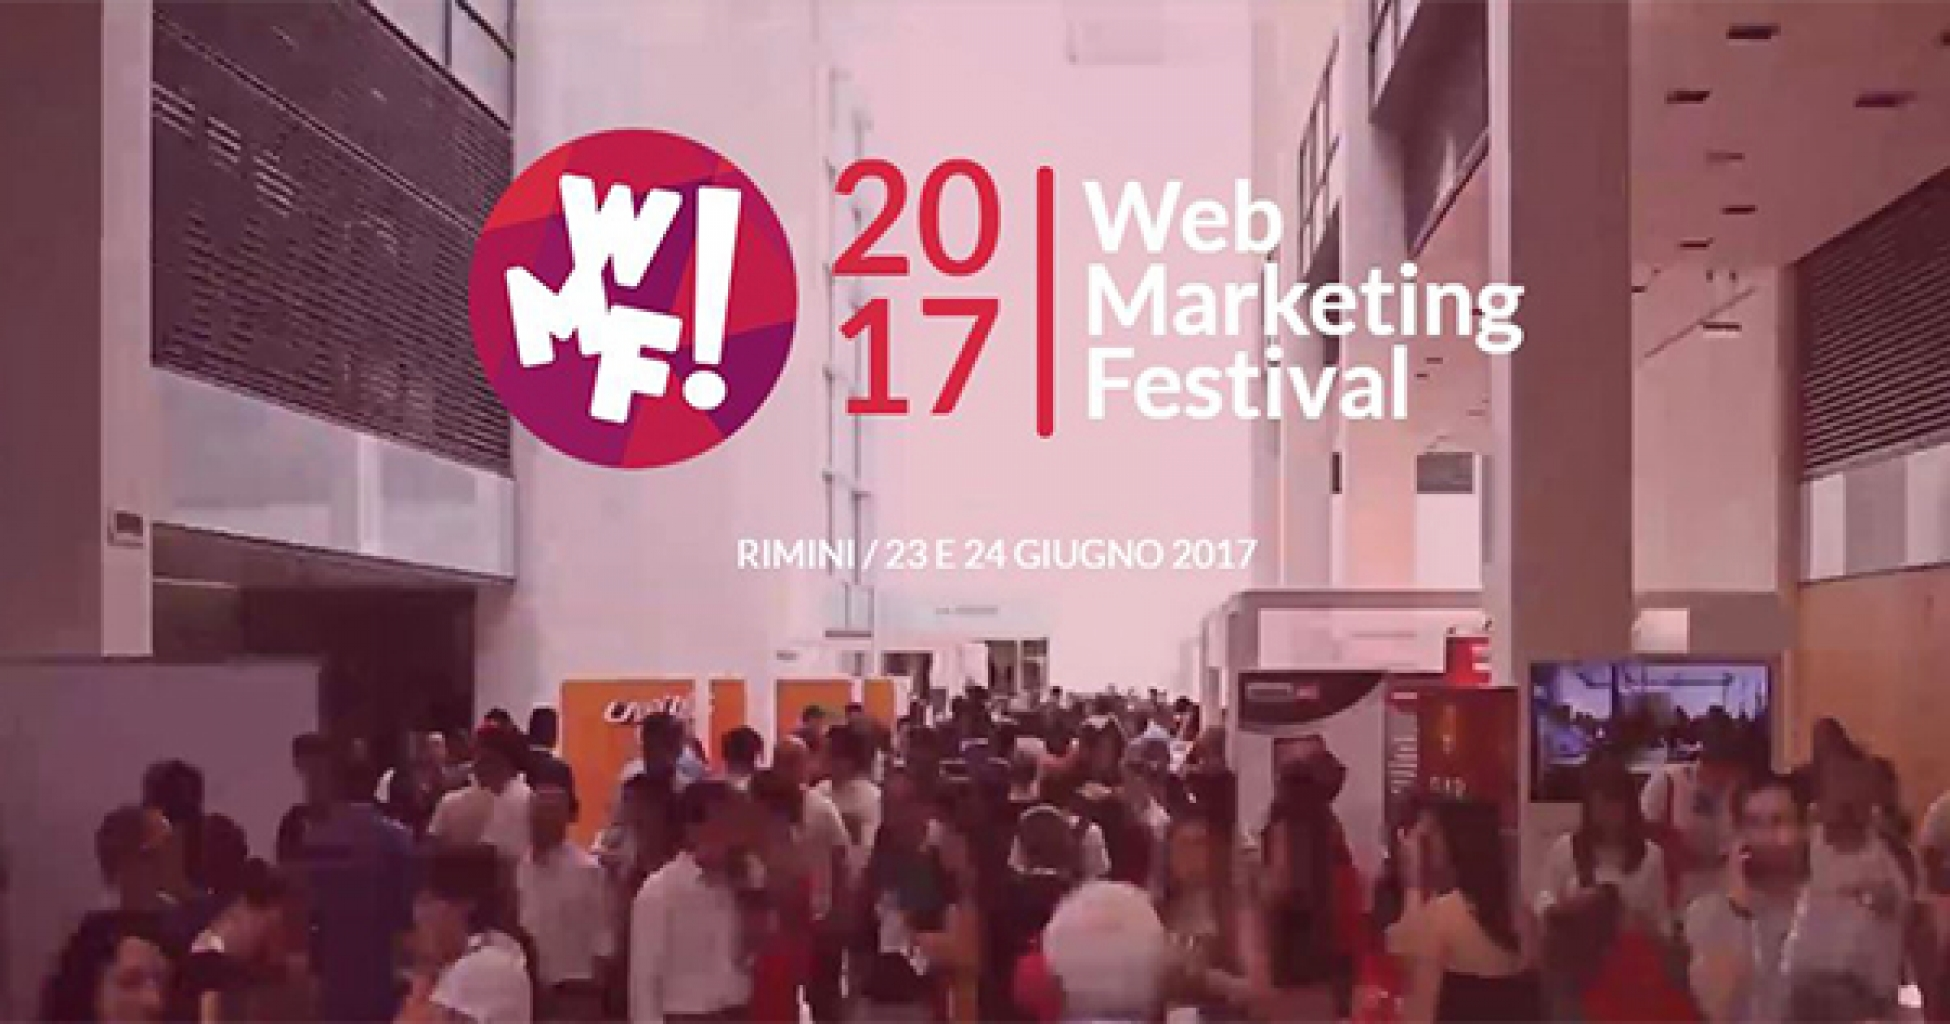 Web Marketing Festival 2017: il più completo evento italiano dedicato al mondo digital